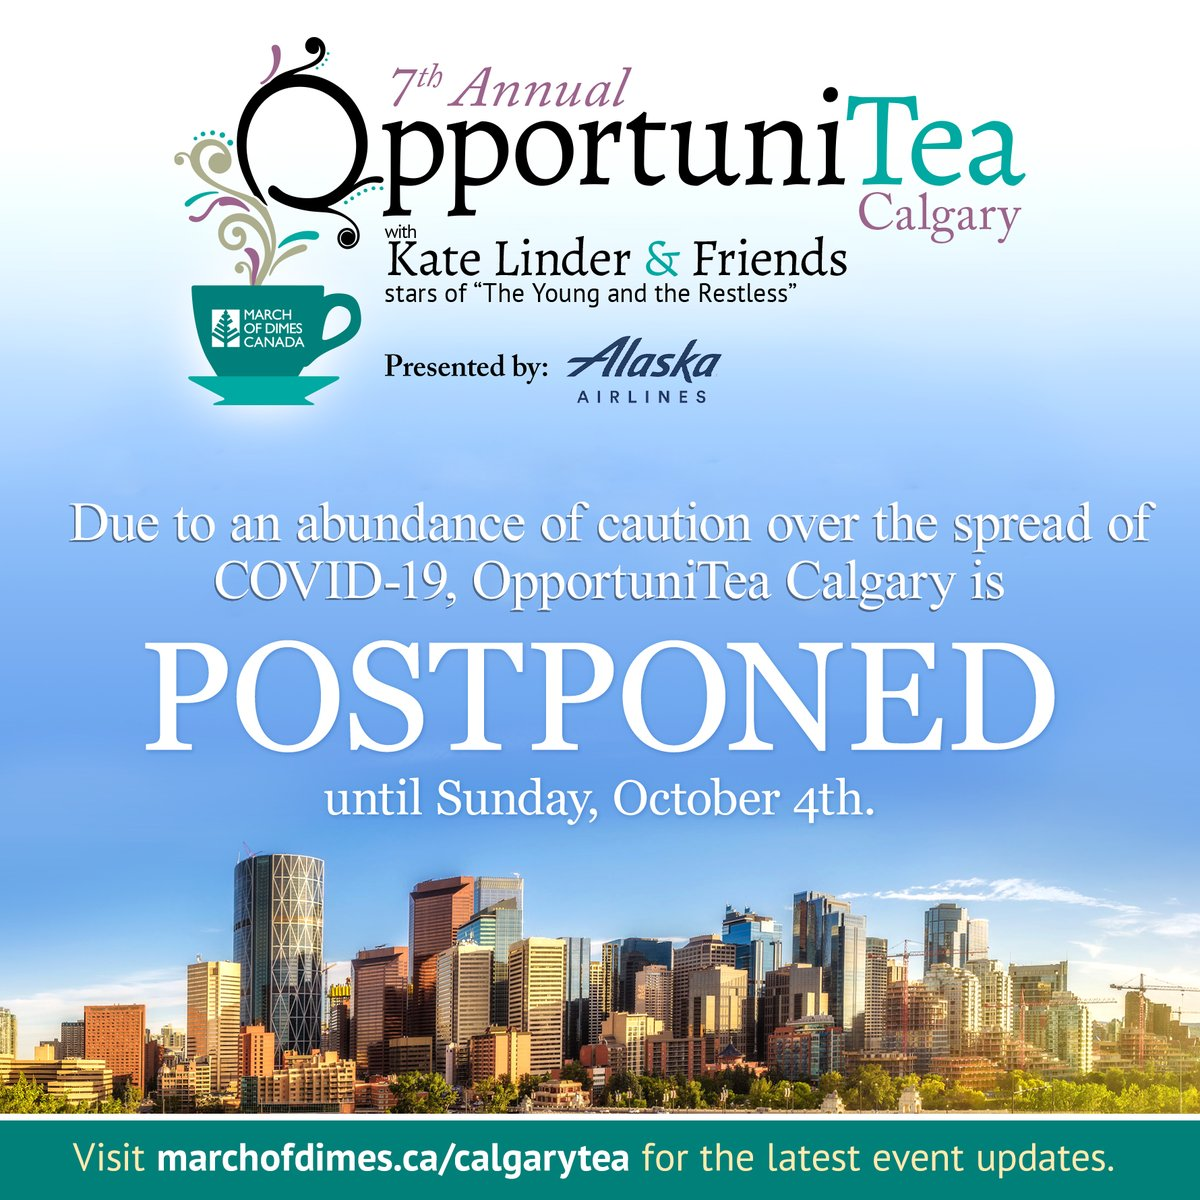 Due to an abundance of caution over the spread of #COVID19 , #OpportuniTea  #Calgary  is postponed until Sunday, October 4th.  For more information about OpportuniTea #Calgary  please visit:  http://marchofdimes.ca/calgarytea    @KATELINDER  @CJLeBlanc  @sharonlcase  @MarkGrossman